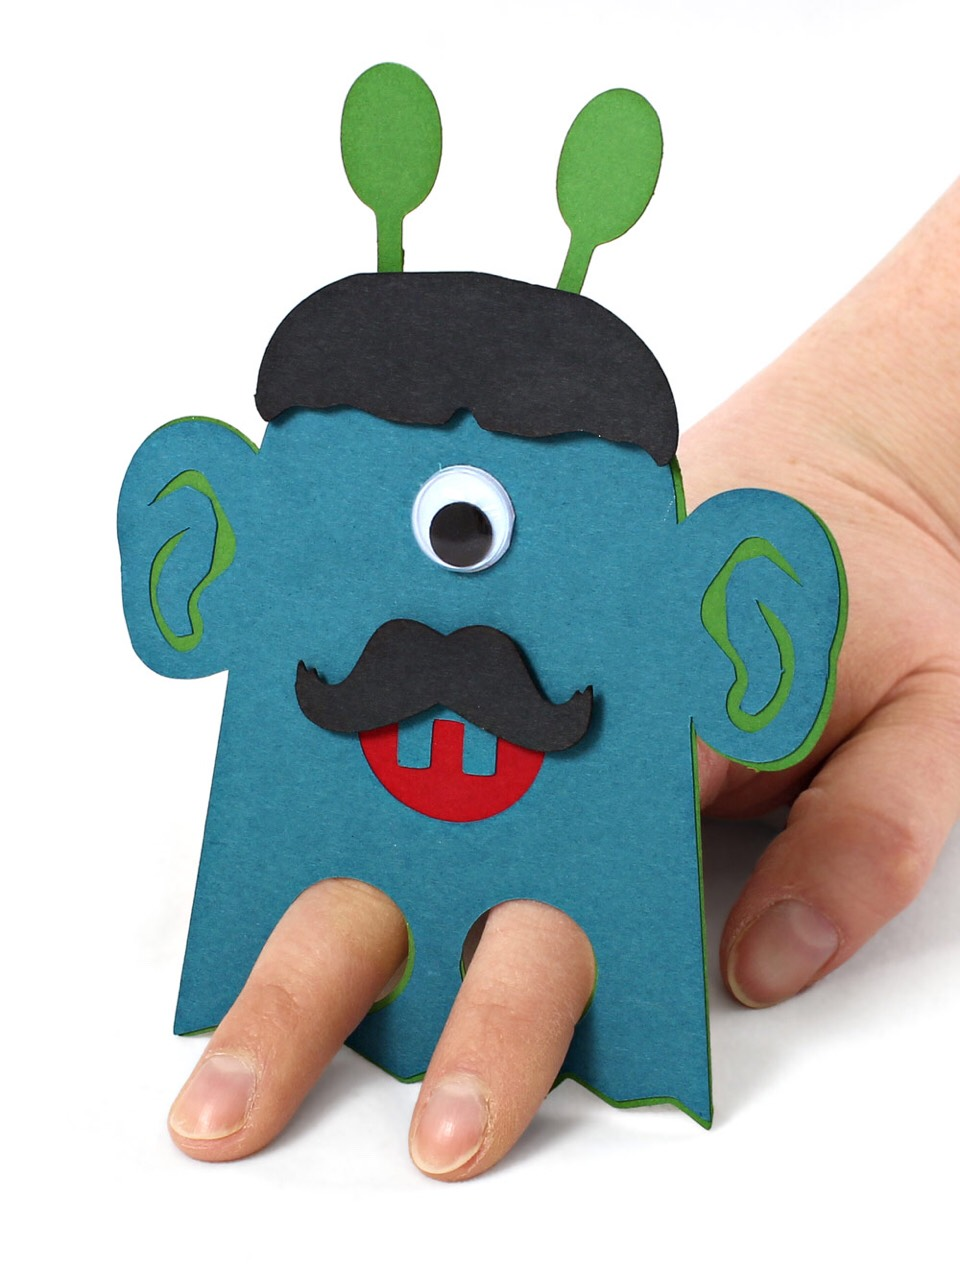 Make your own finger puppets